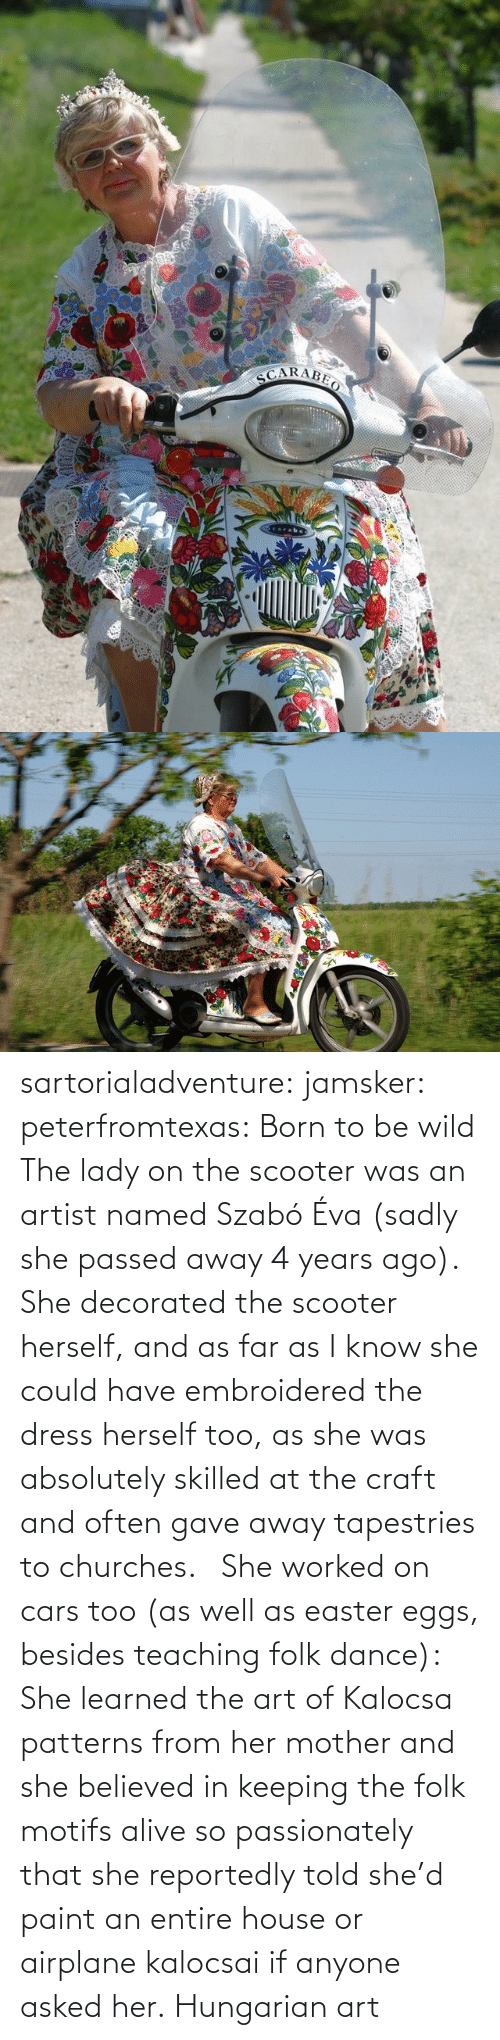 away: sartorialadventure: jamsker:  peterfromtexas: Born to be wild The lady on the scooter was an artist named Szabó Éva (sadly she passed away 4 years ago). She decorated the scooter herself, and as far as I know she could have embroidered the dress herself too, as she was absolutely skilled at the craft and often gave away tapestries to churches.   She worked on cars too (as well as easter eggs, besides teaching folk dance): She learned the art of Kalocsa patterns from her mother and she believed in keeping the folk motifs alive so passionately that she reportedly told she'd paint an entire house or airplane kalocsai if anyone asked her.  Hungarian art